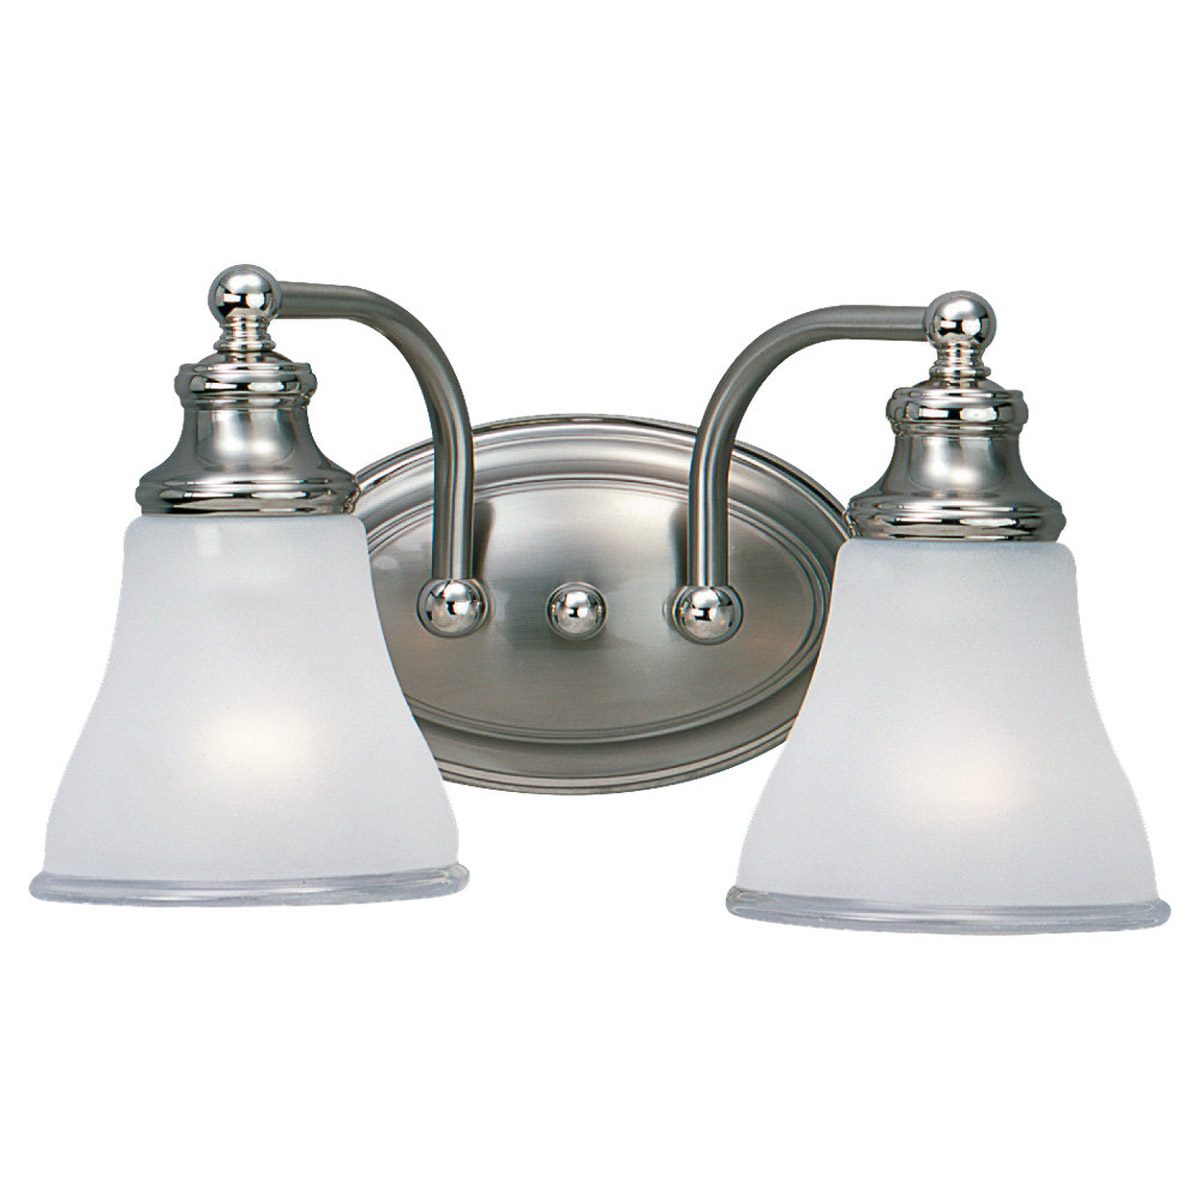 Sea Gull Lighting Alexandria 2 Light Bath Vanity in Two Tone Nickel 40010-773 photo